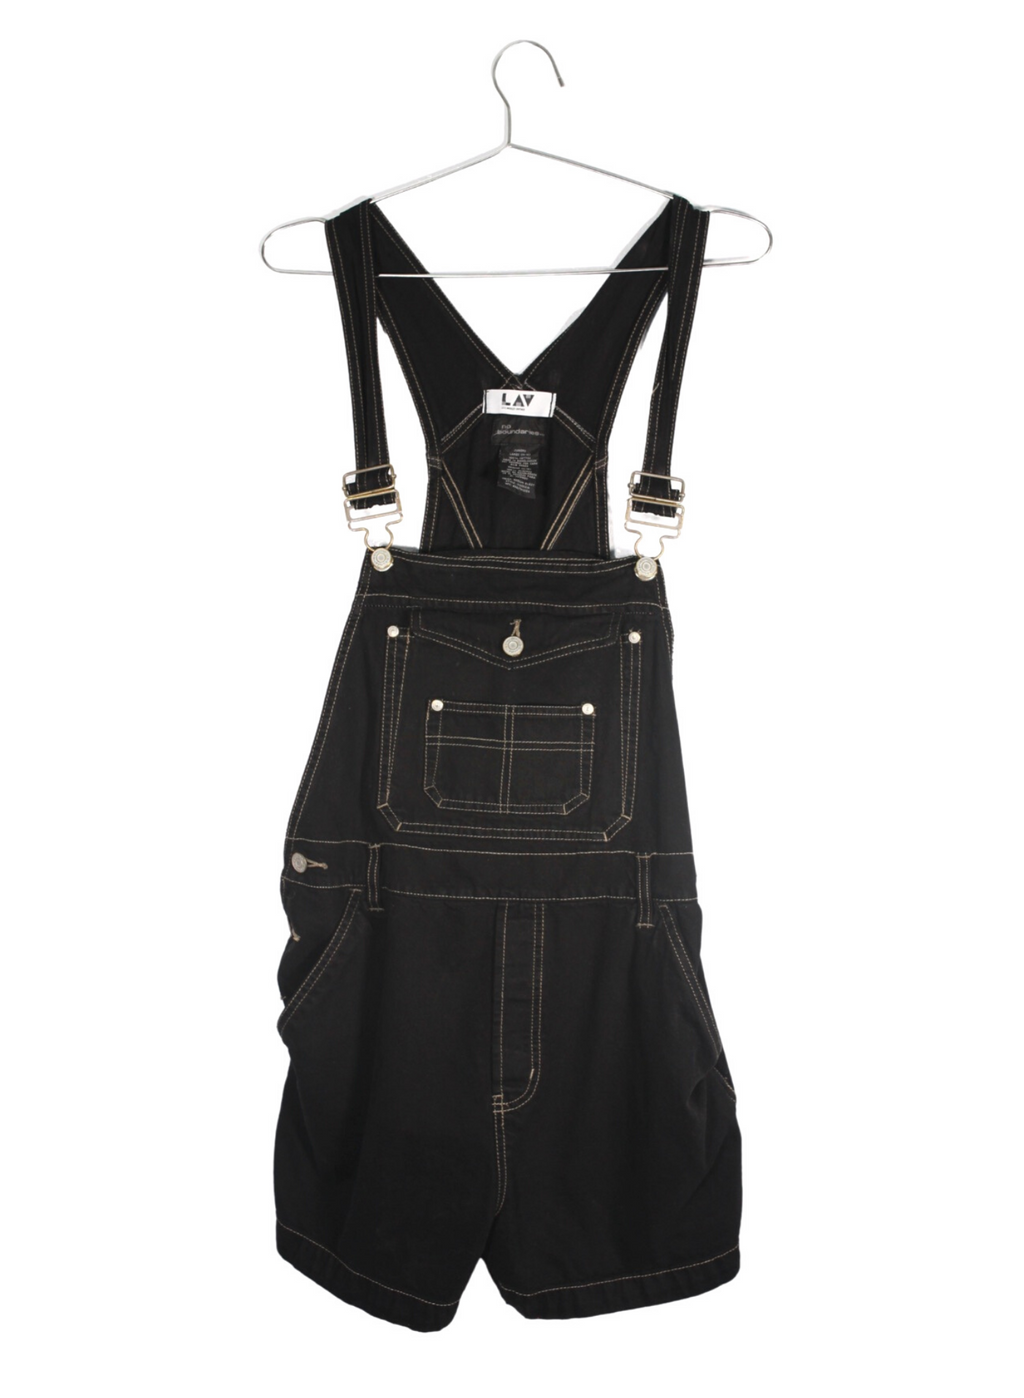 Vintage Black Denim Short Overalls